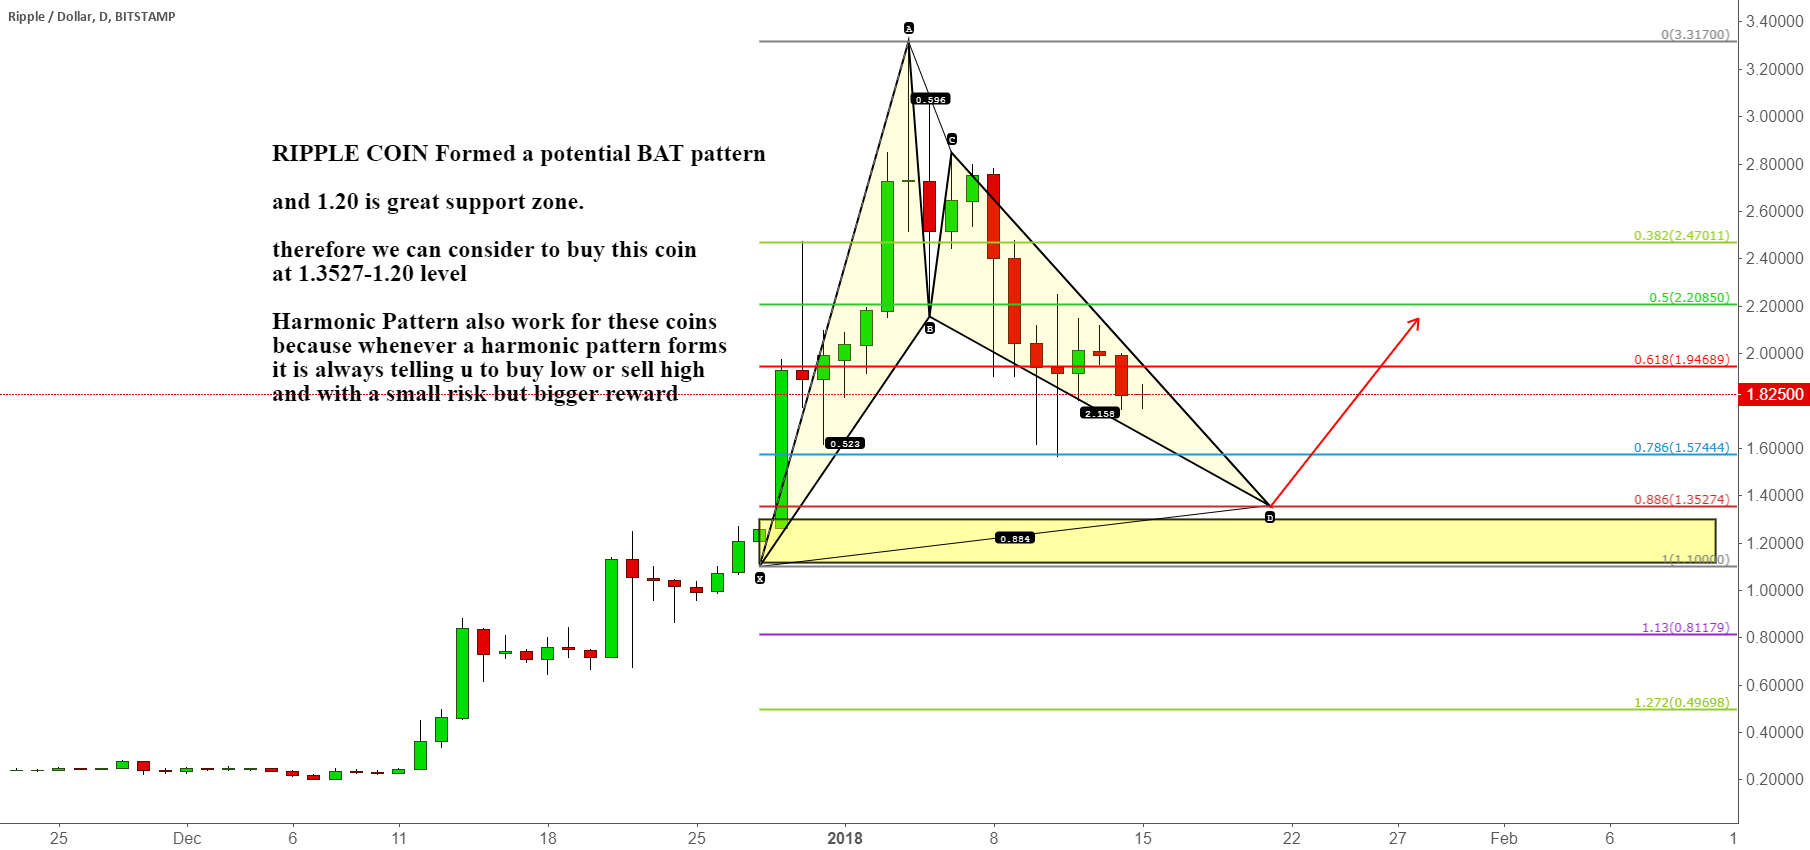 RIPPLE COIN Formed a potential BAT pattern